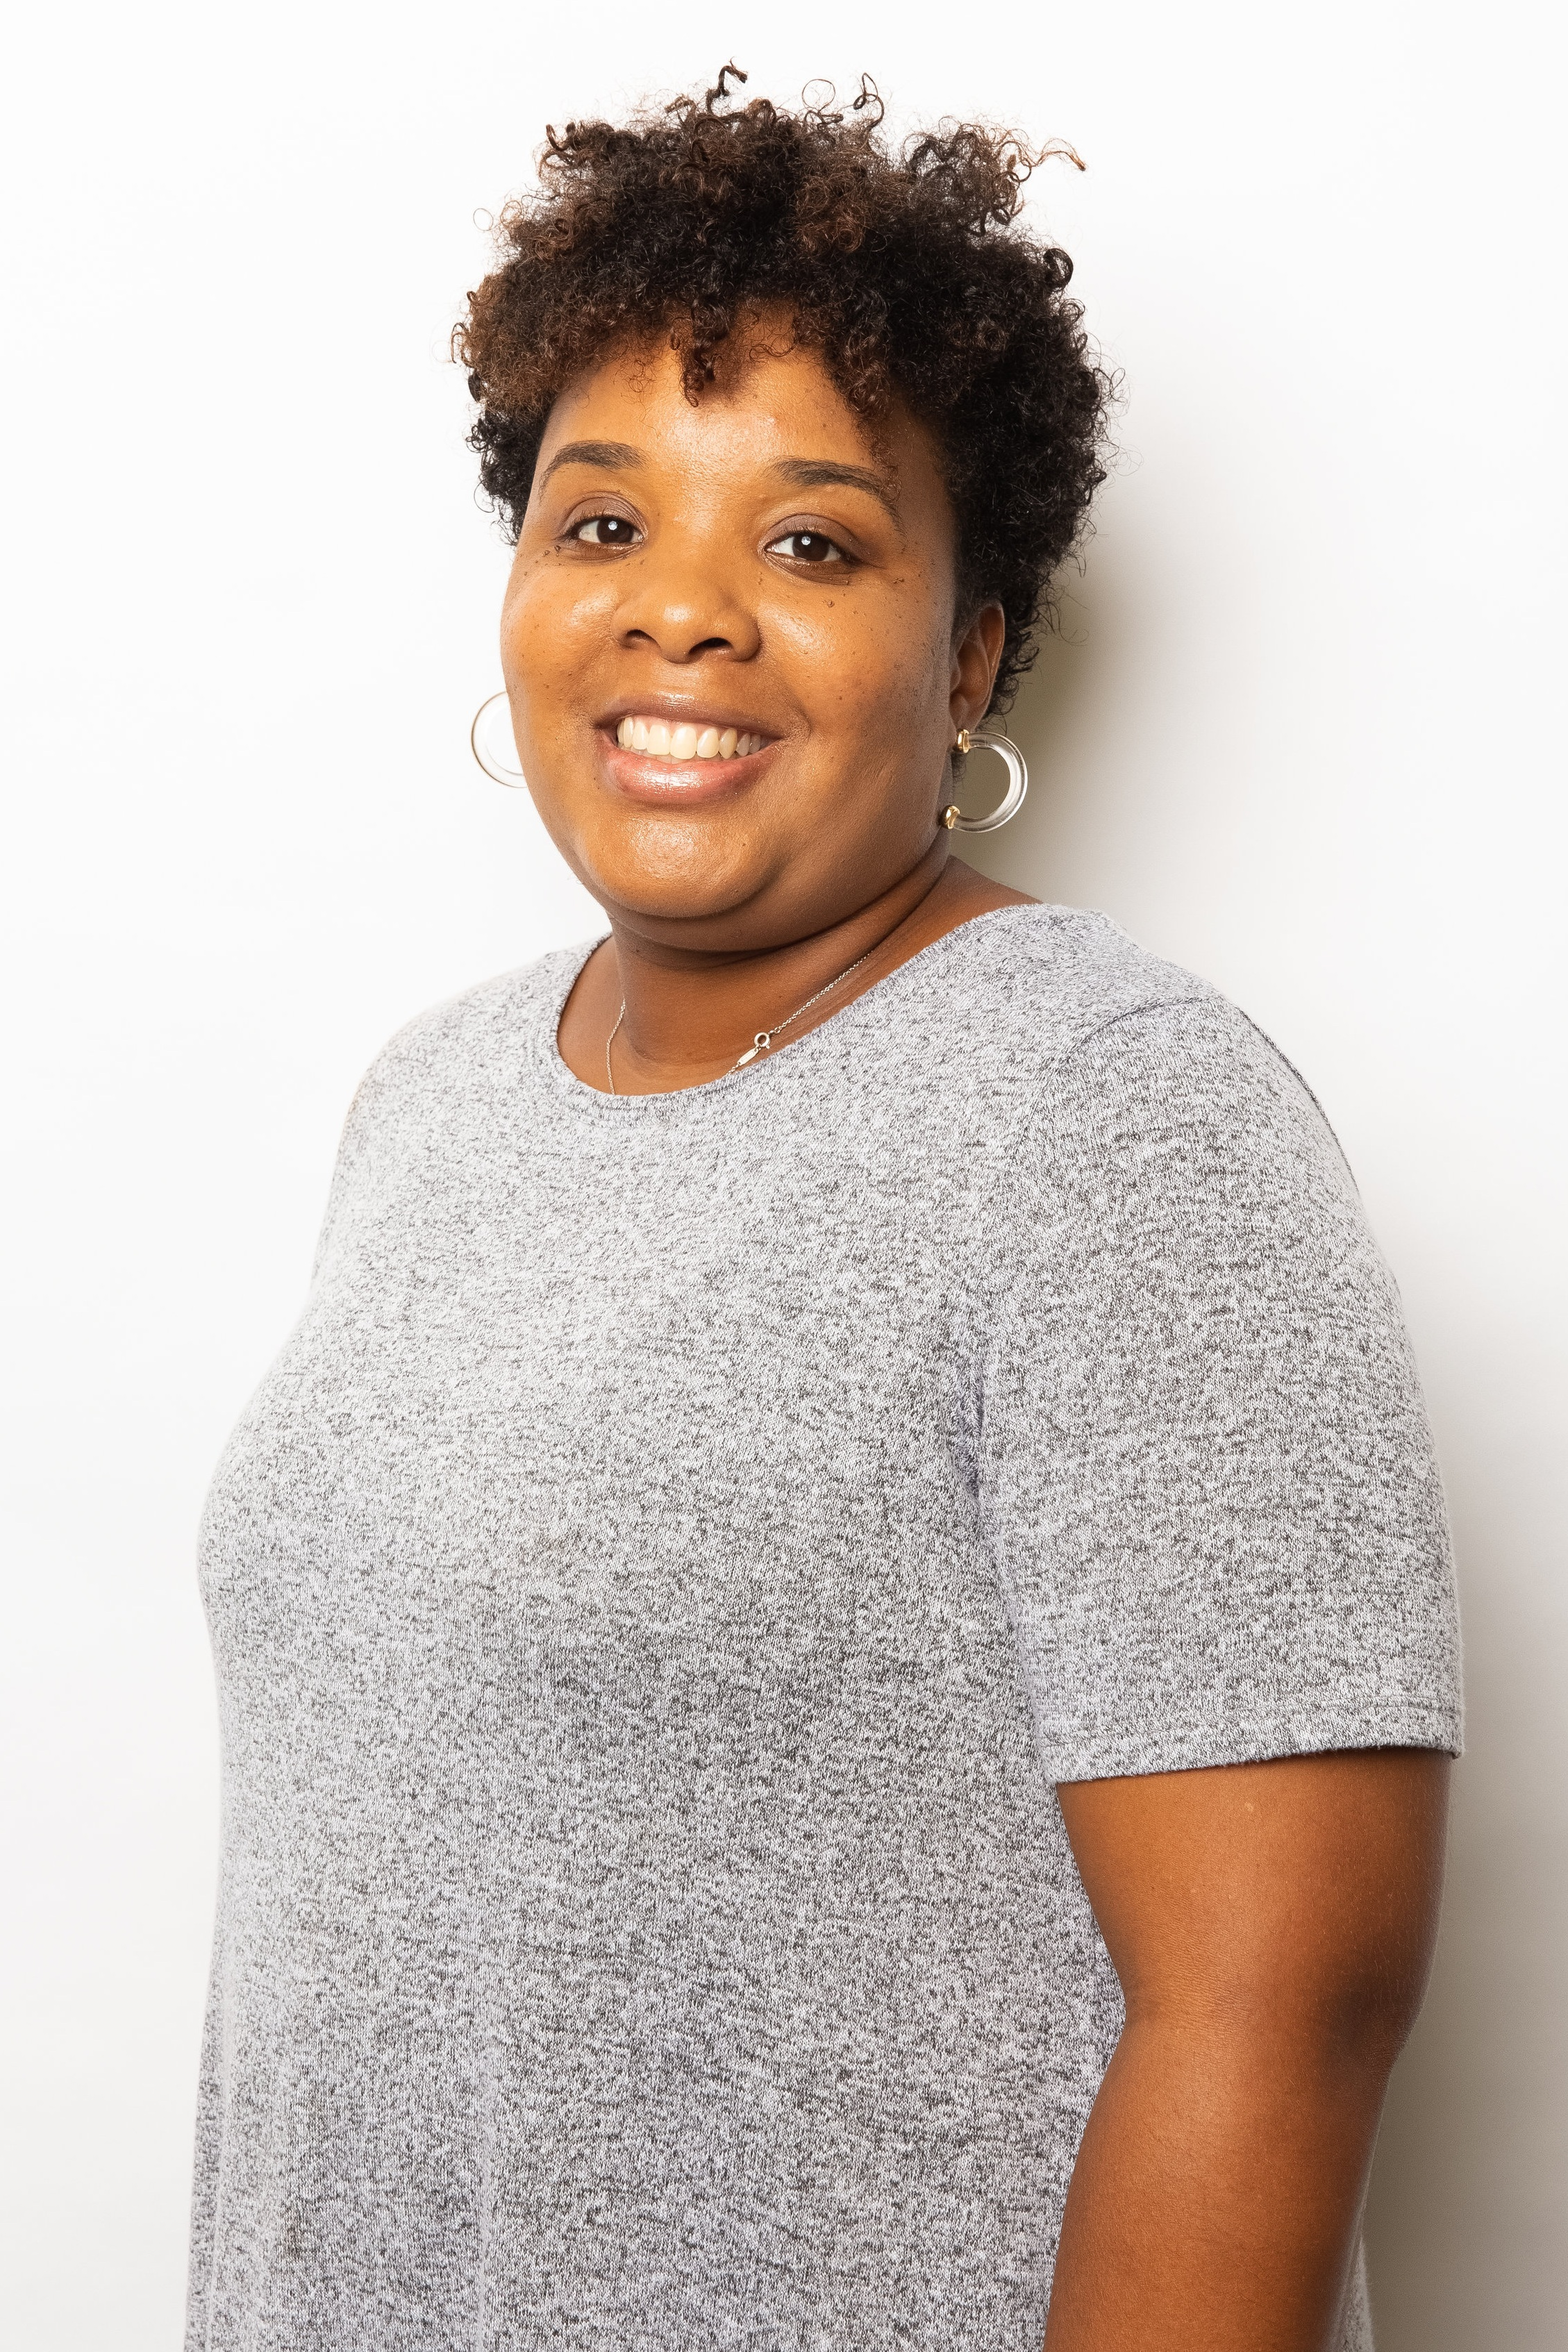 Kanitha Pope, Team Support Coordinator